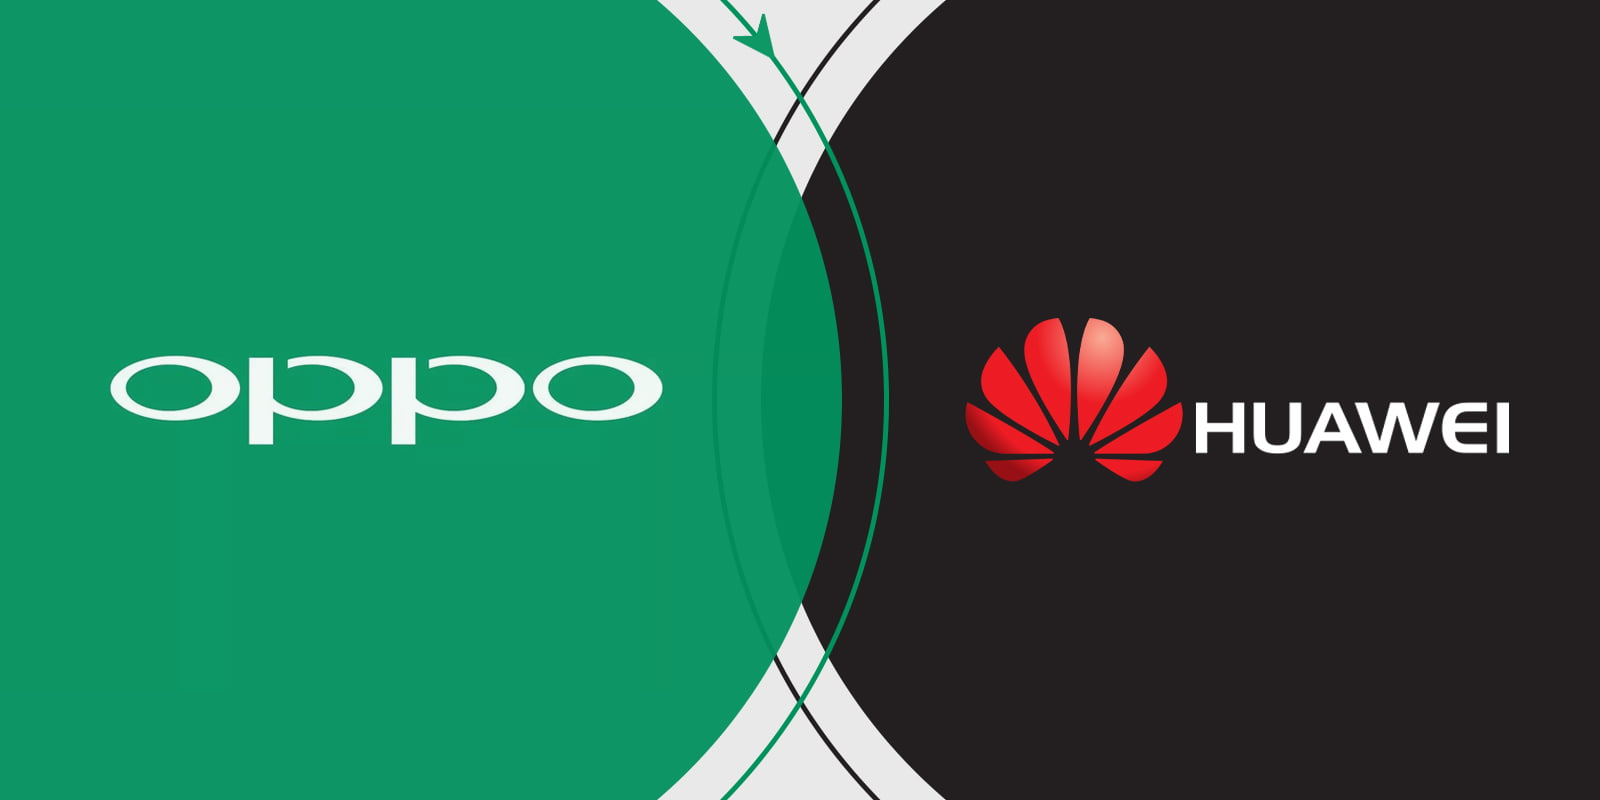 An Image comprising Oppo and Huawei logos